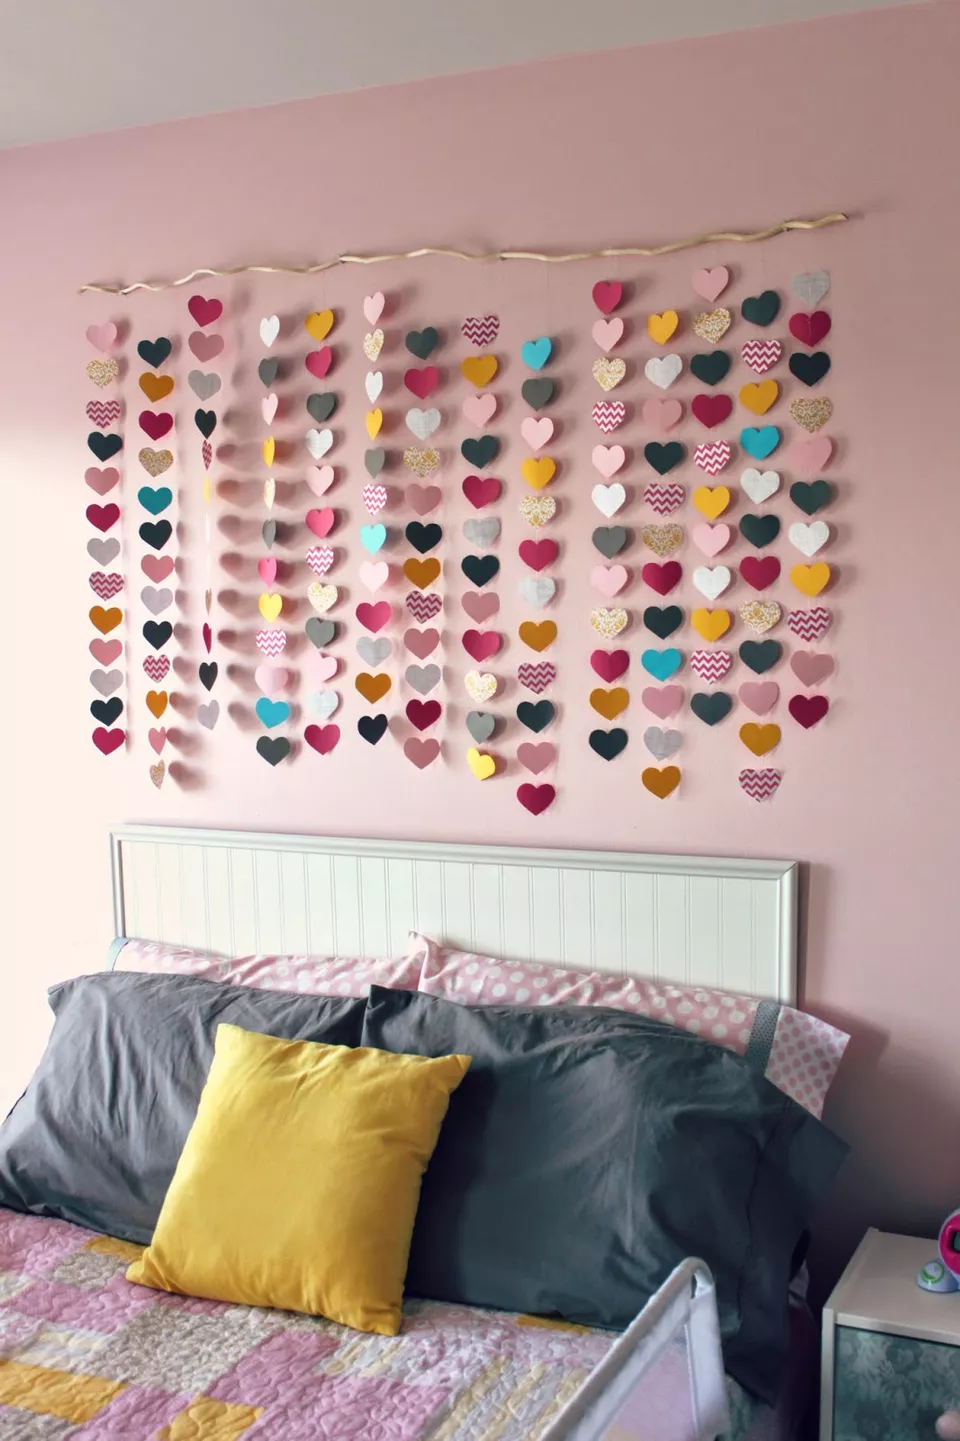 24 Wall Decor Ideas For Girls Rooms Diy Wall Decor For Bedroom Diy Home Decor Bedroom Bedroom Diy